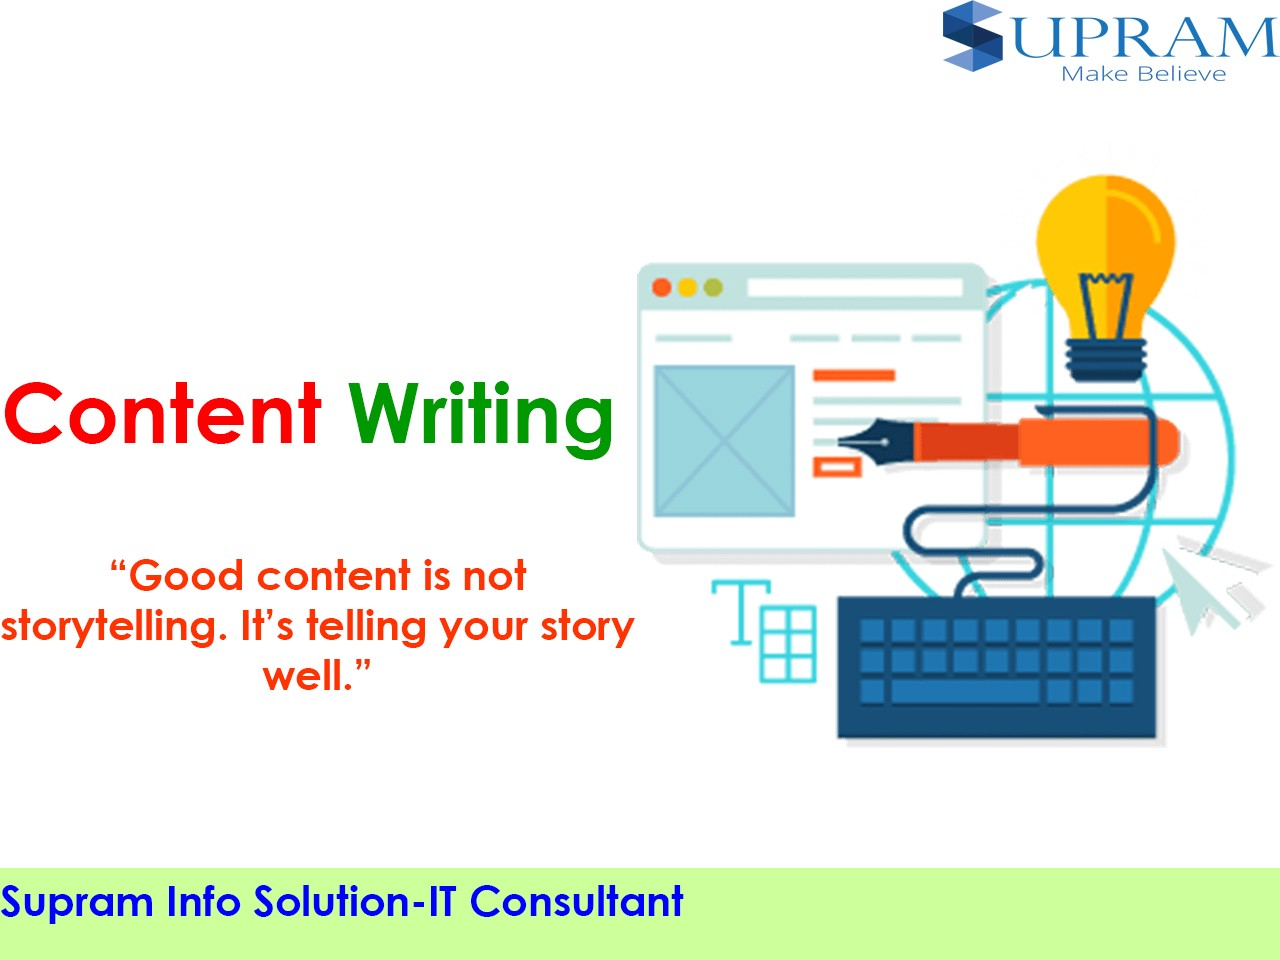 Creative content writing services by Suprams info solution- good content is not storytelling. it's your story well